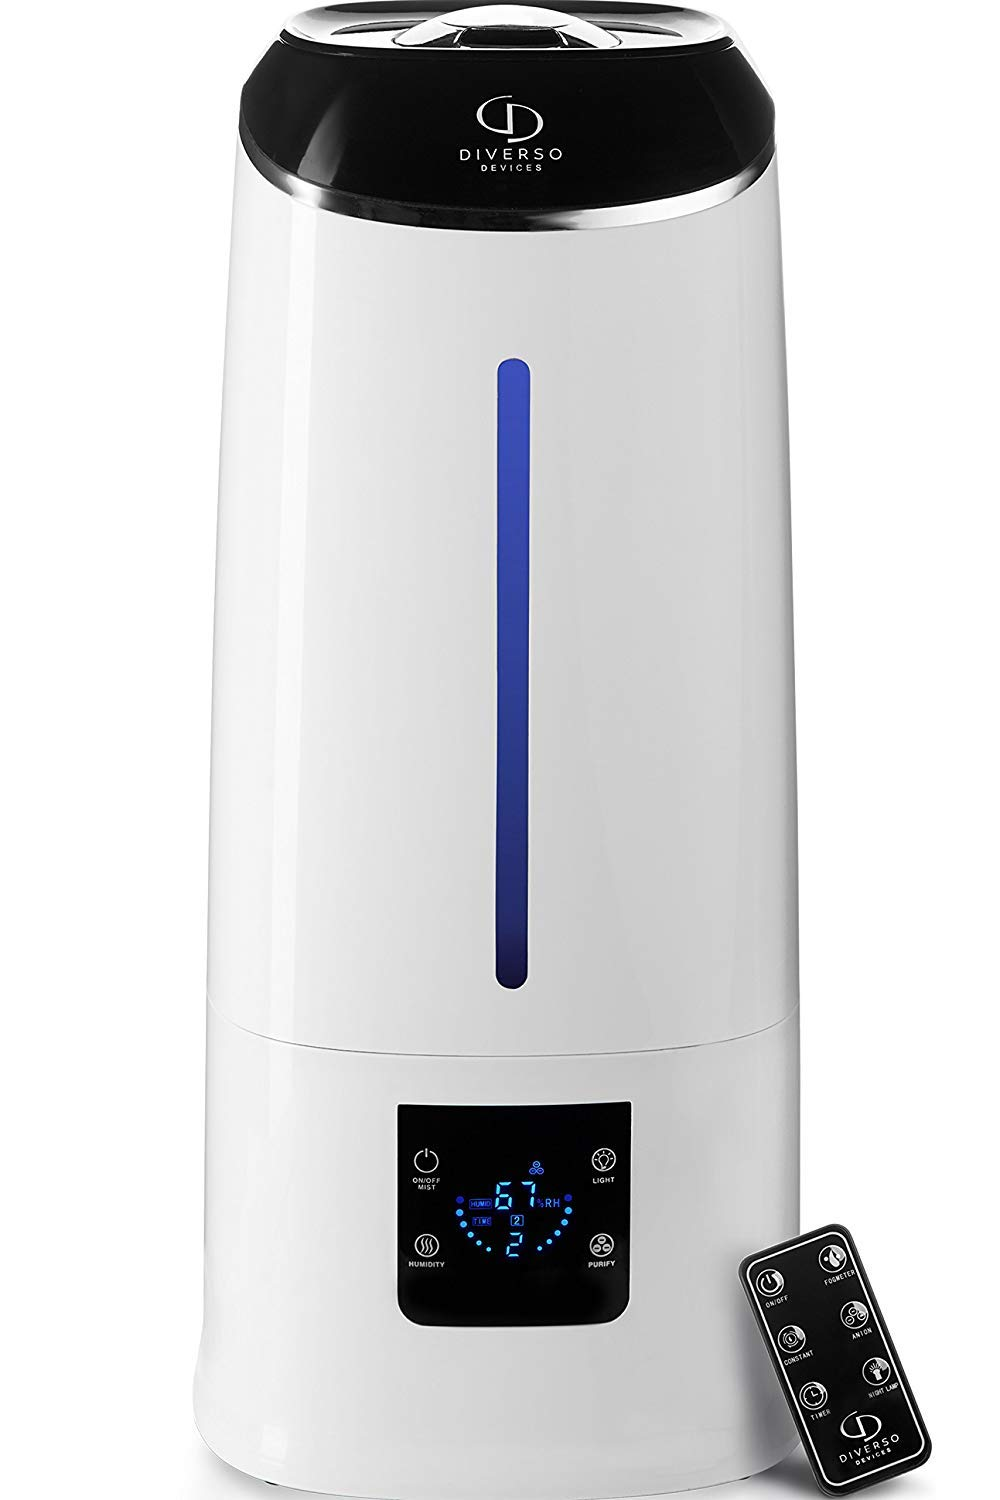 DIVERSO DEVICES Cool Mist Humidifier